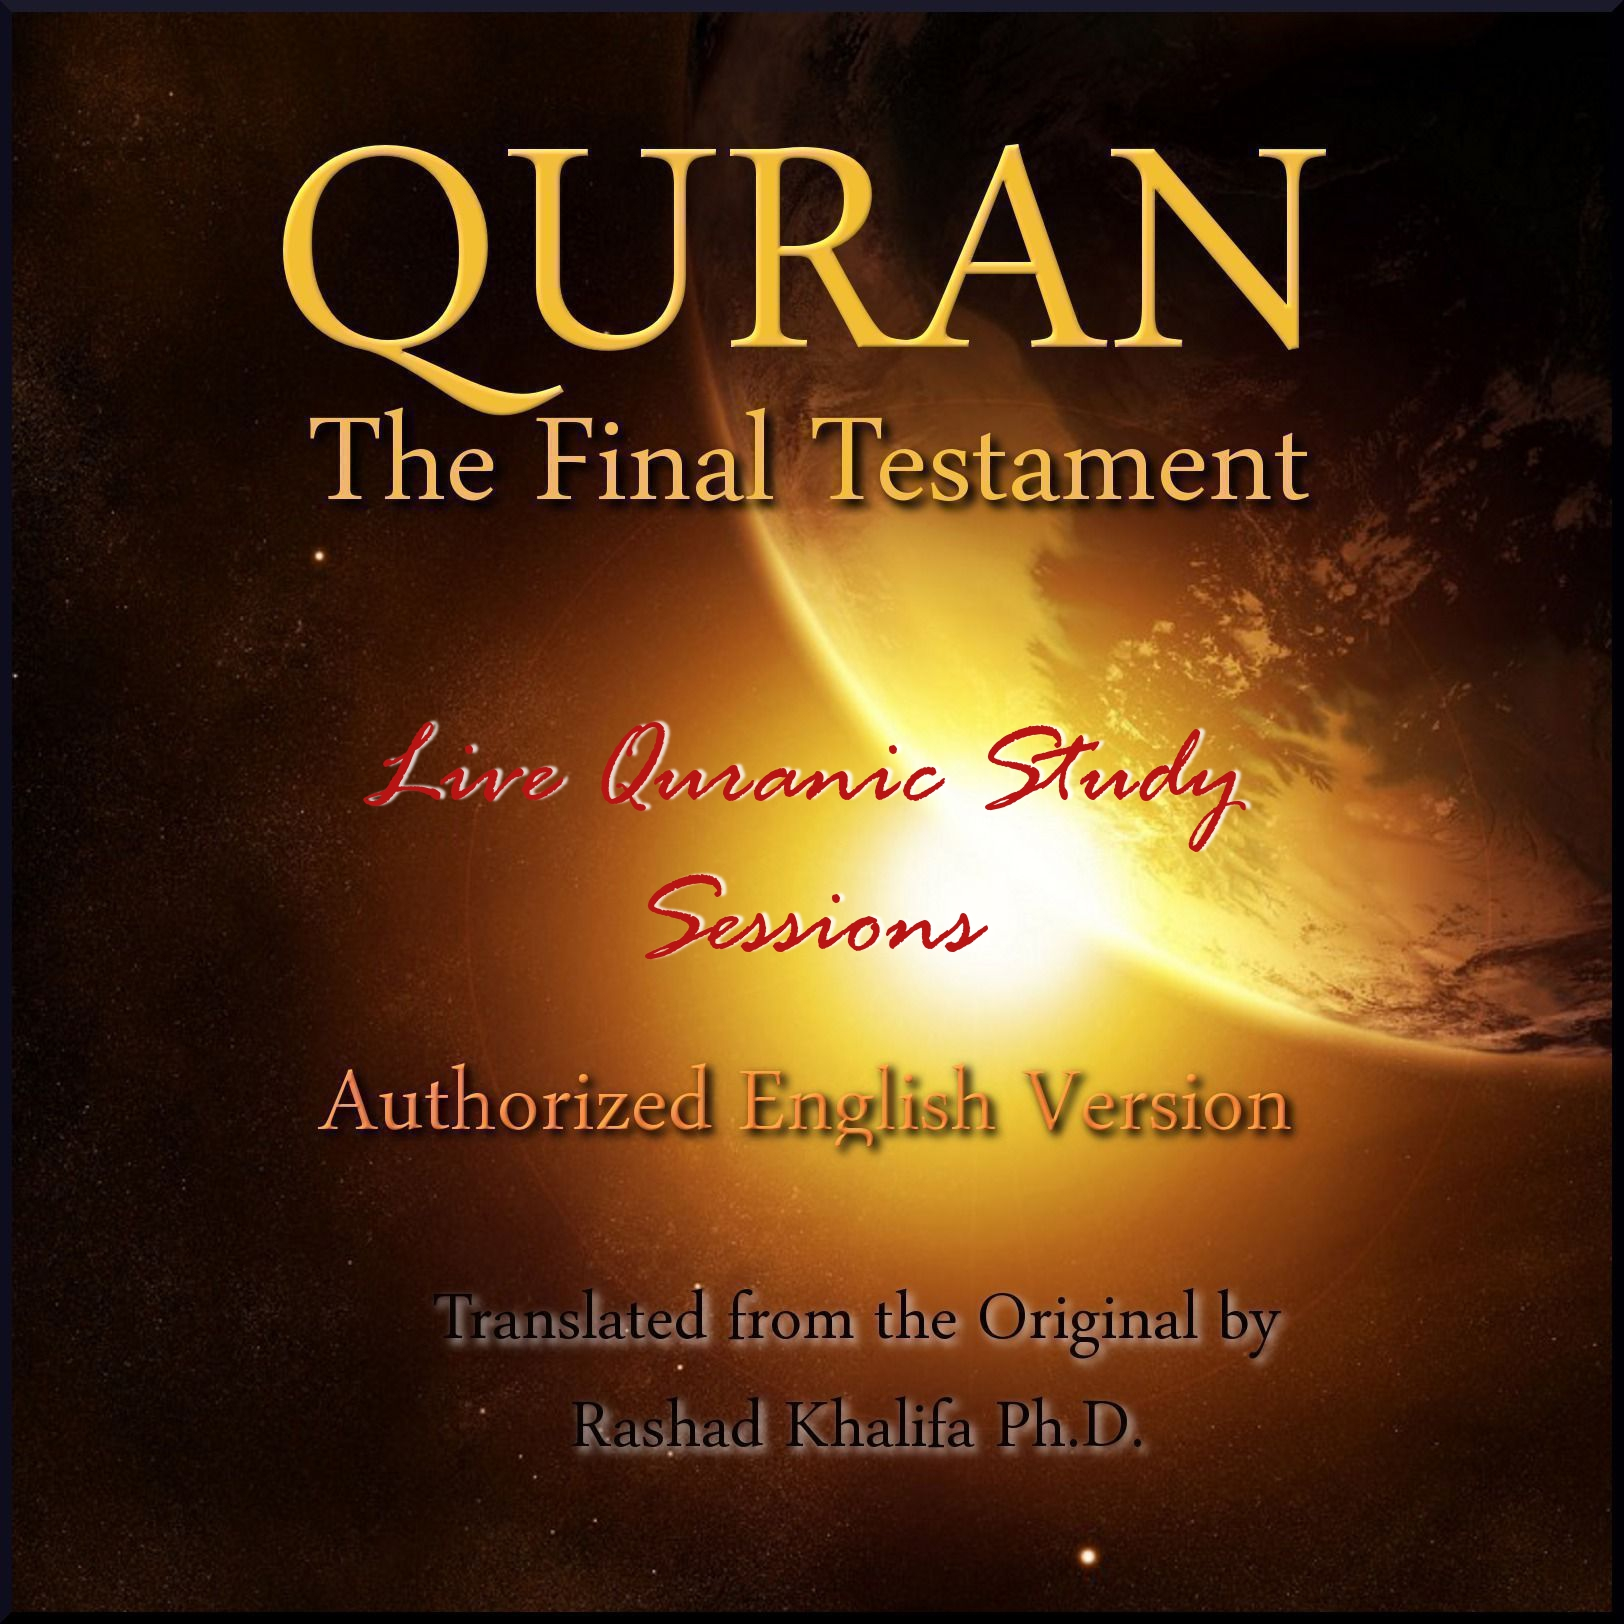 Quranic Study Sessions with Dr. Rashad Khalifa